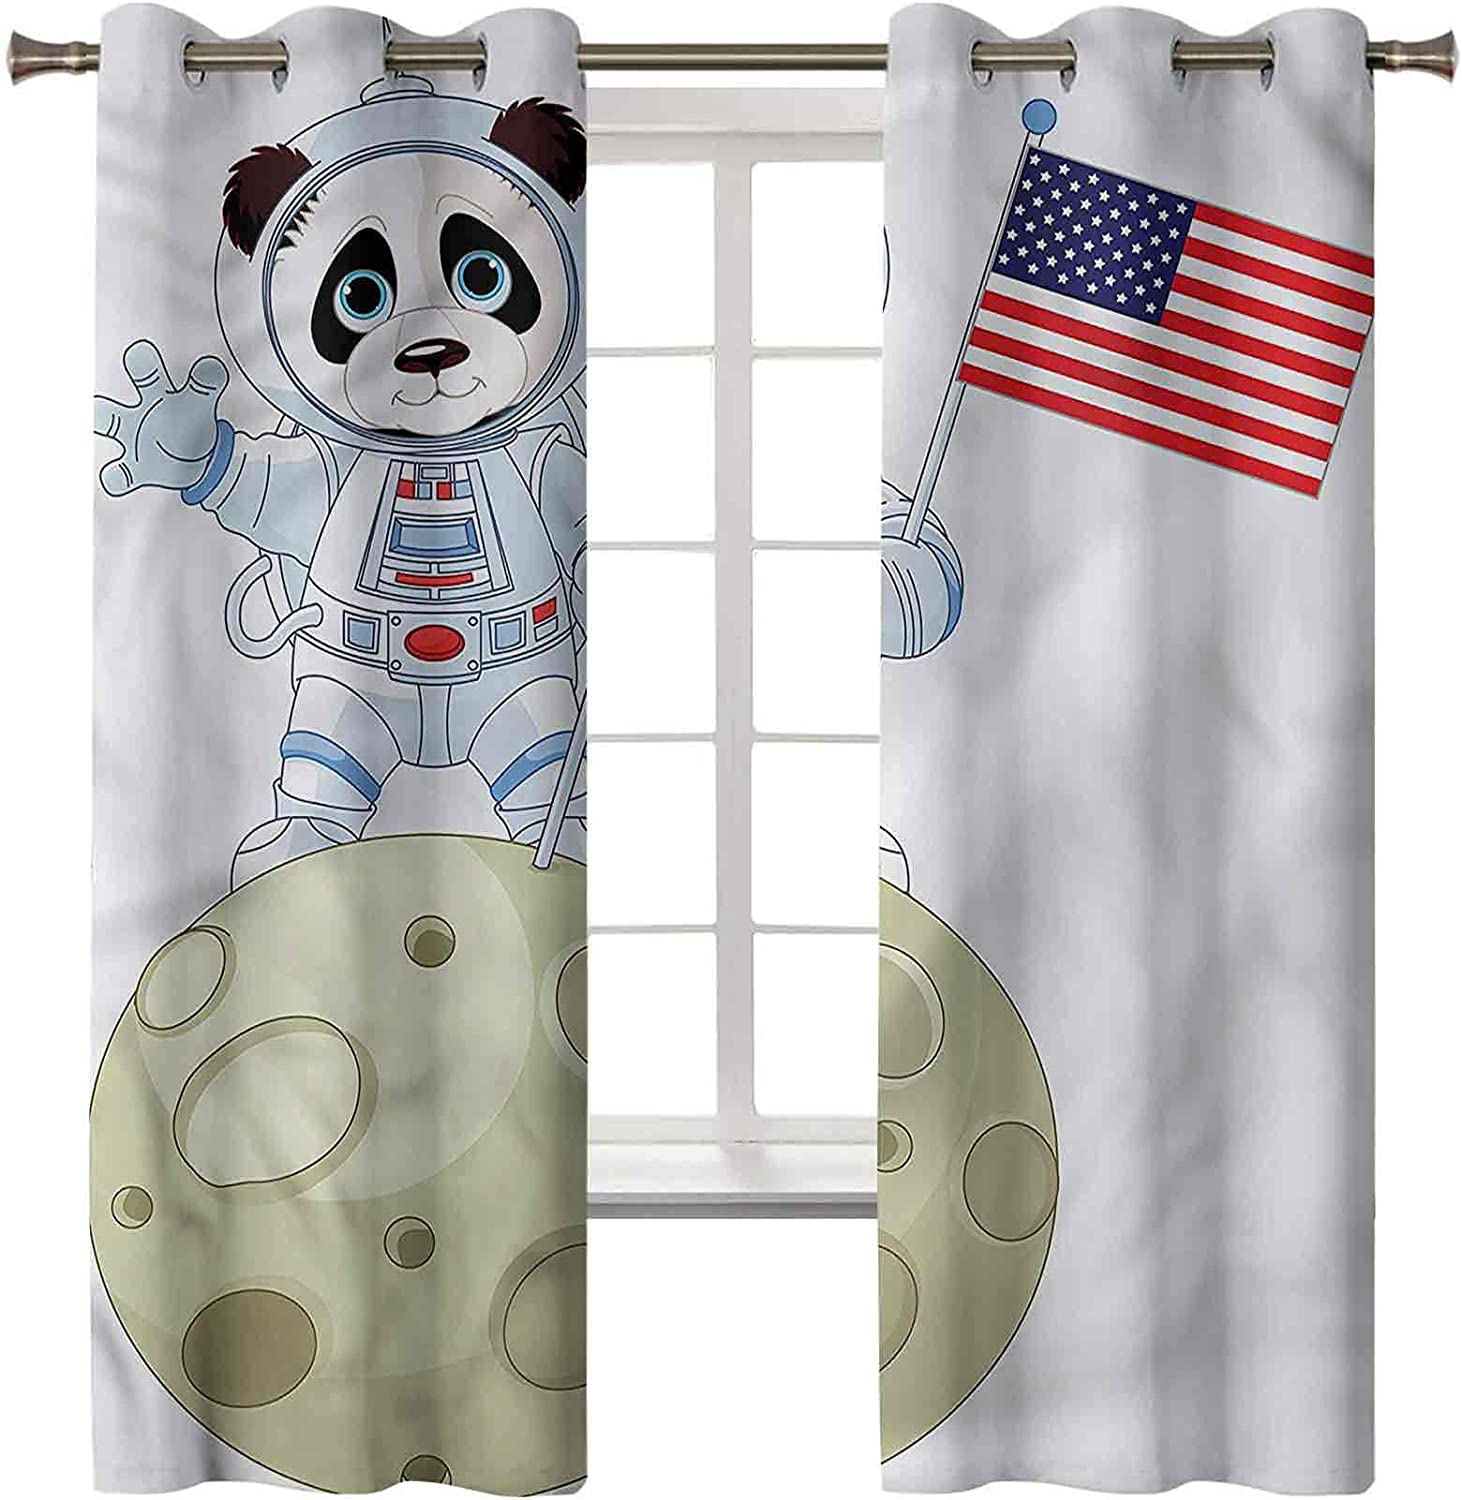 Blackout Window Curtain Thermal Insulated Panda Decor Astr Home Max 87% OFF Spasm price